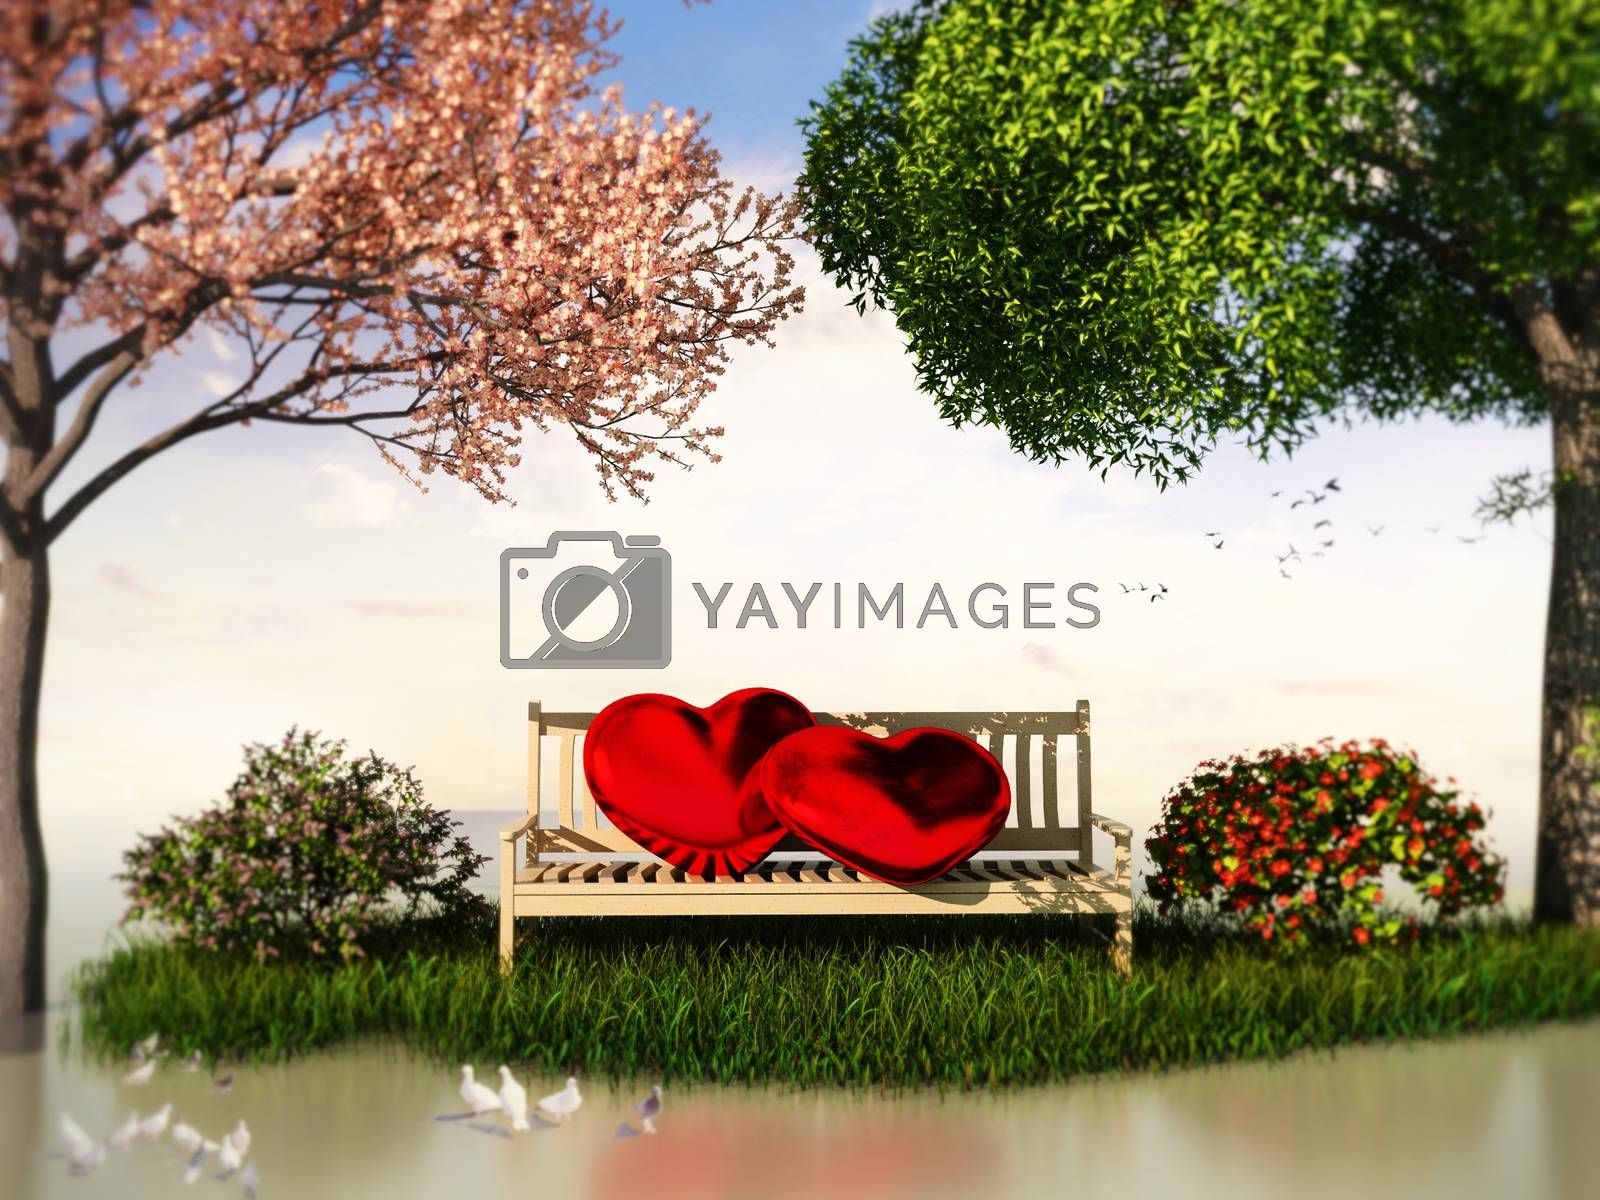 3D Valentin  view for love and romance with heart shape, beautiful summer and spring trees and some birds.